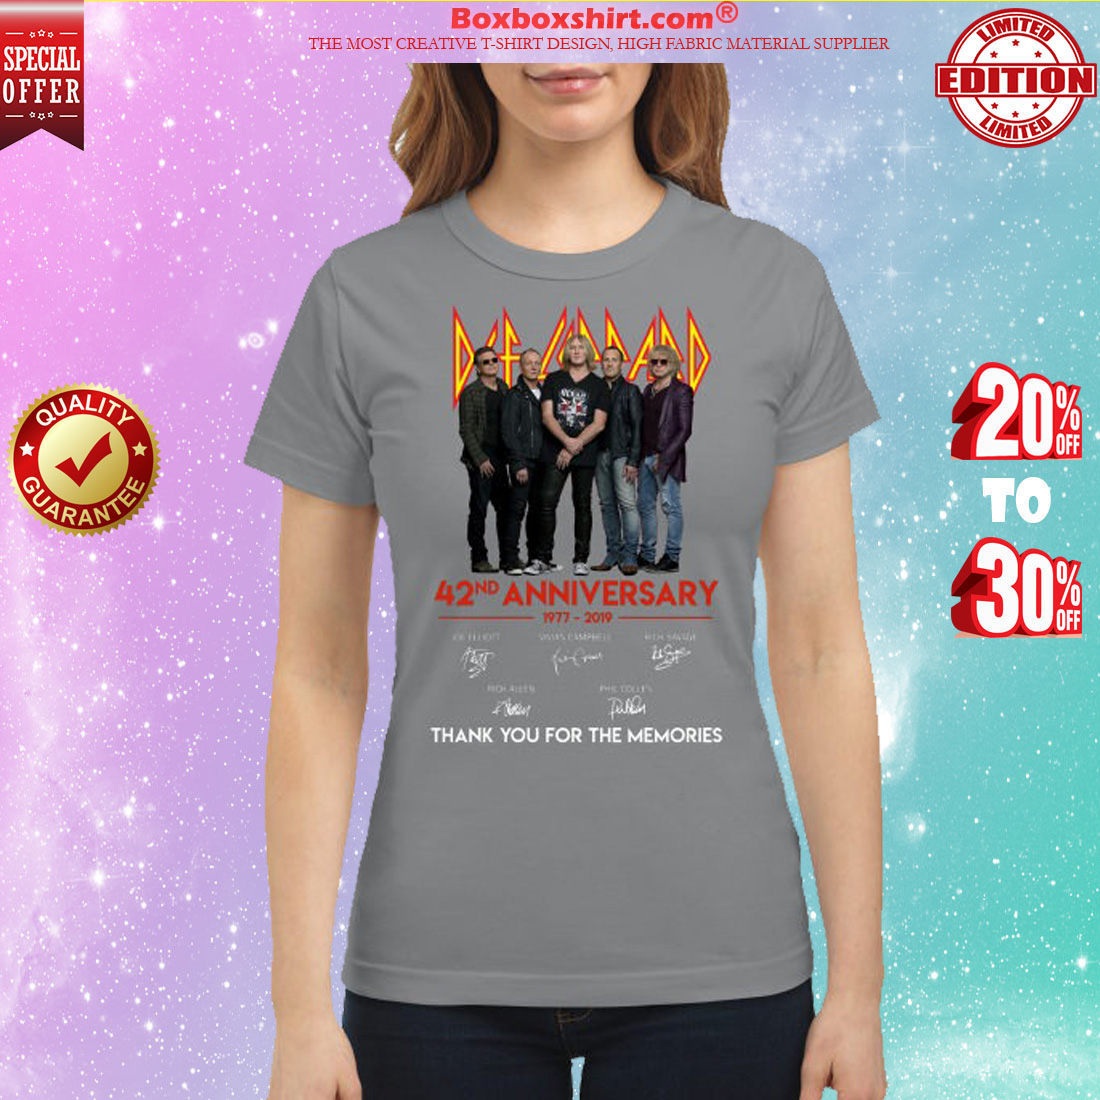 Def leppard 42nd anniversary thank for the memories classic shirt